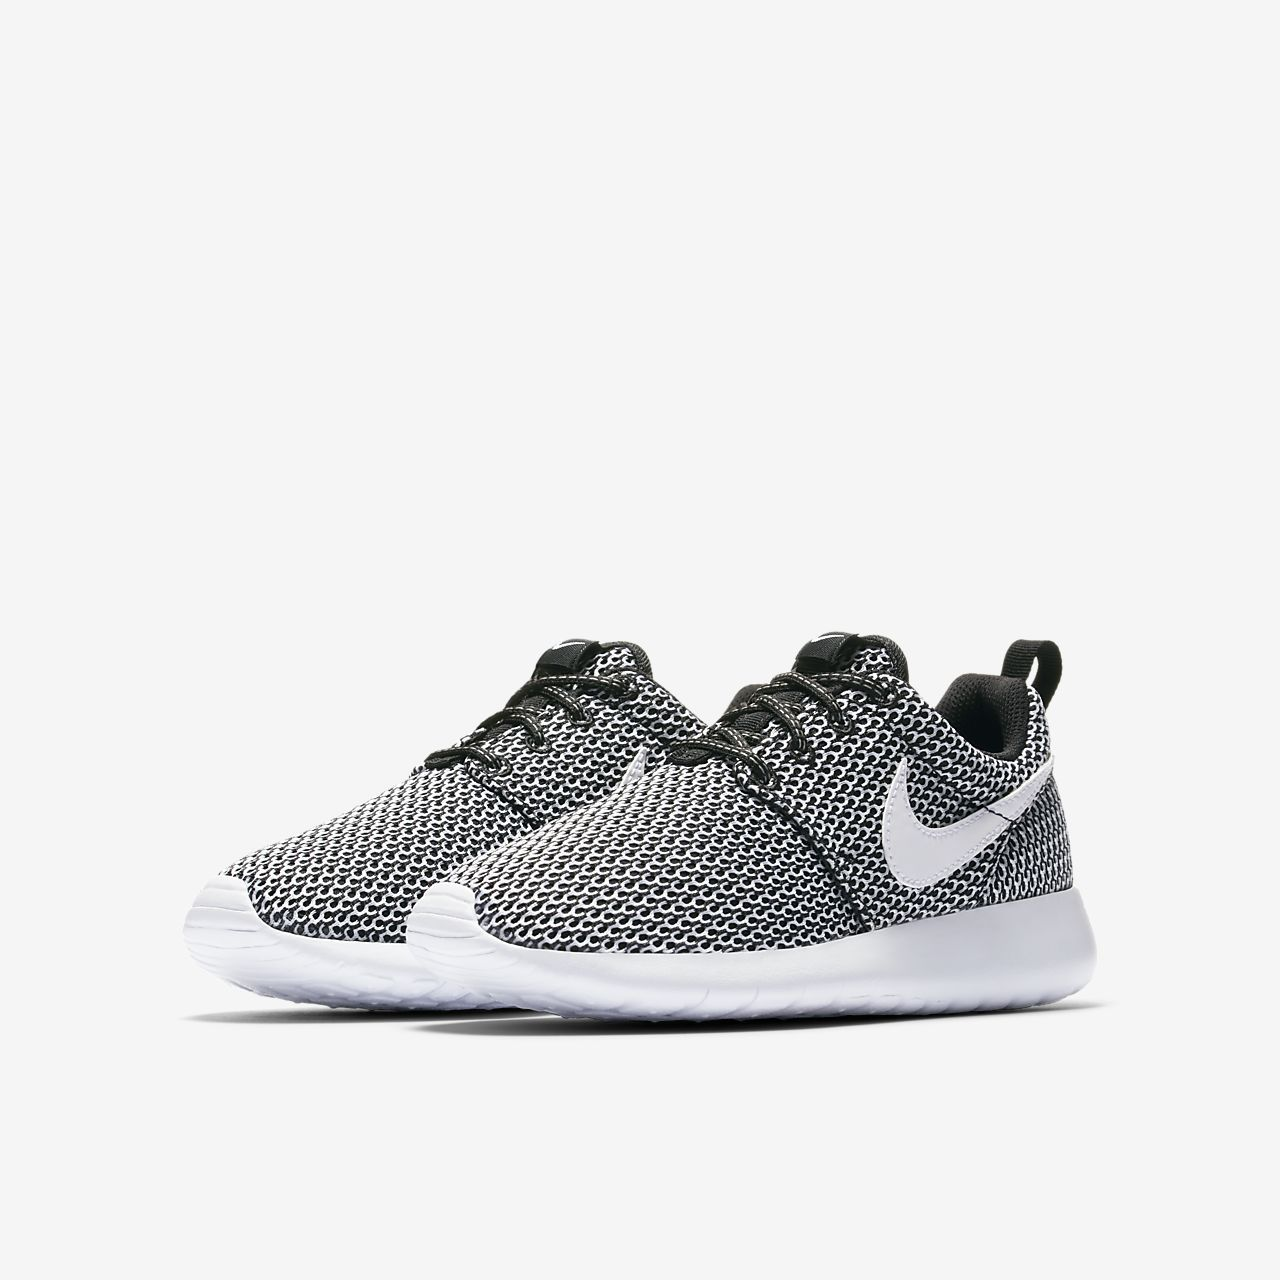 68db87969d0b Nike Roshe One Big Kids  Shoe